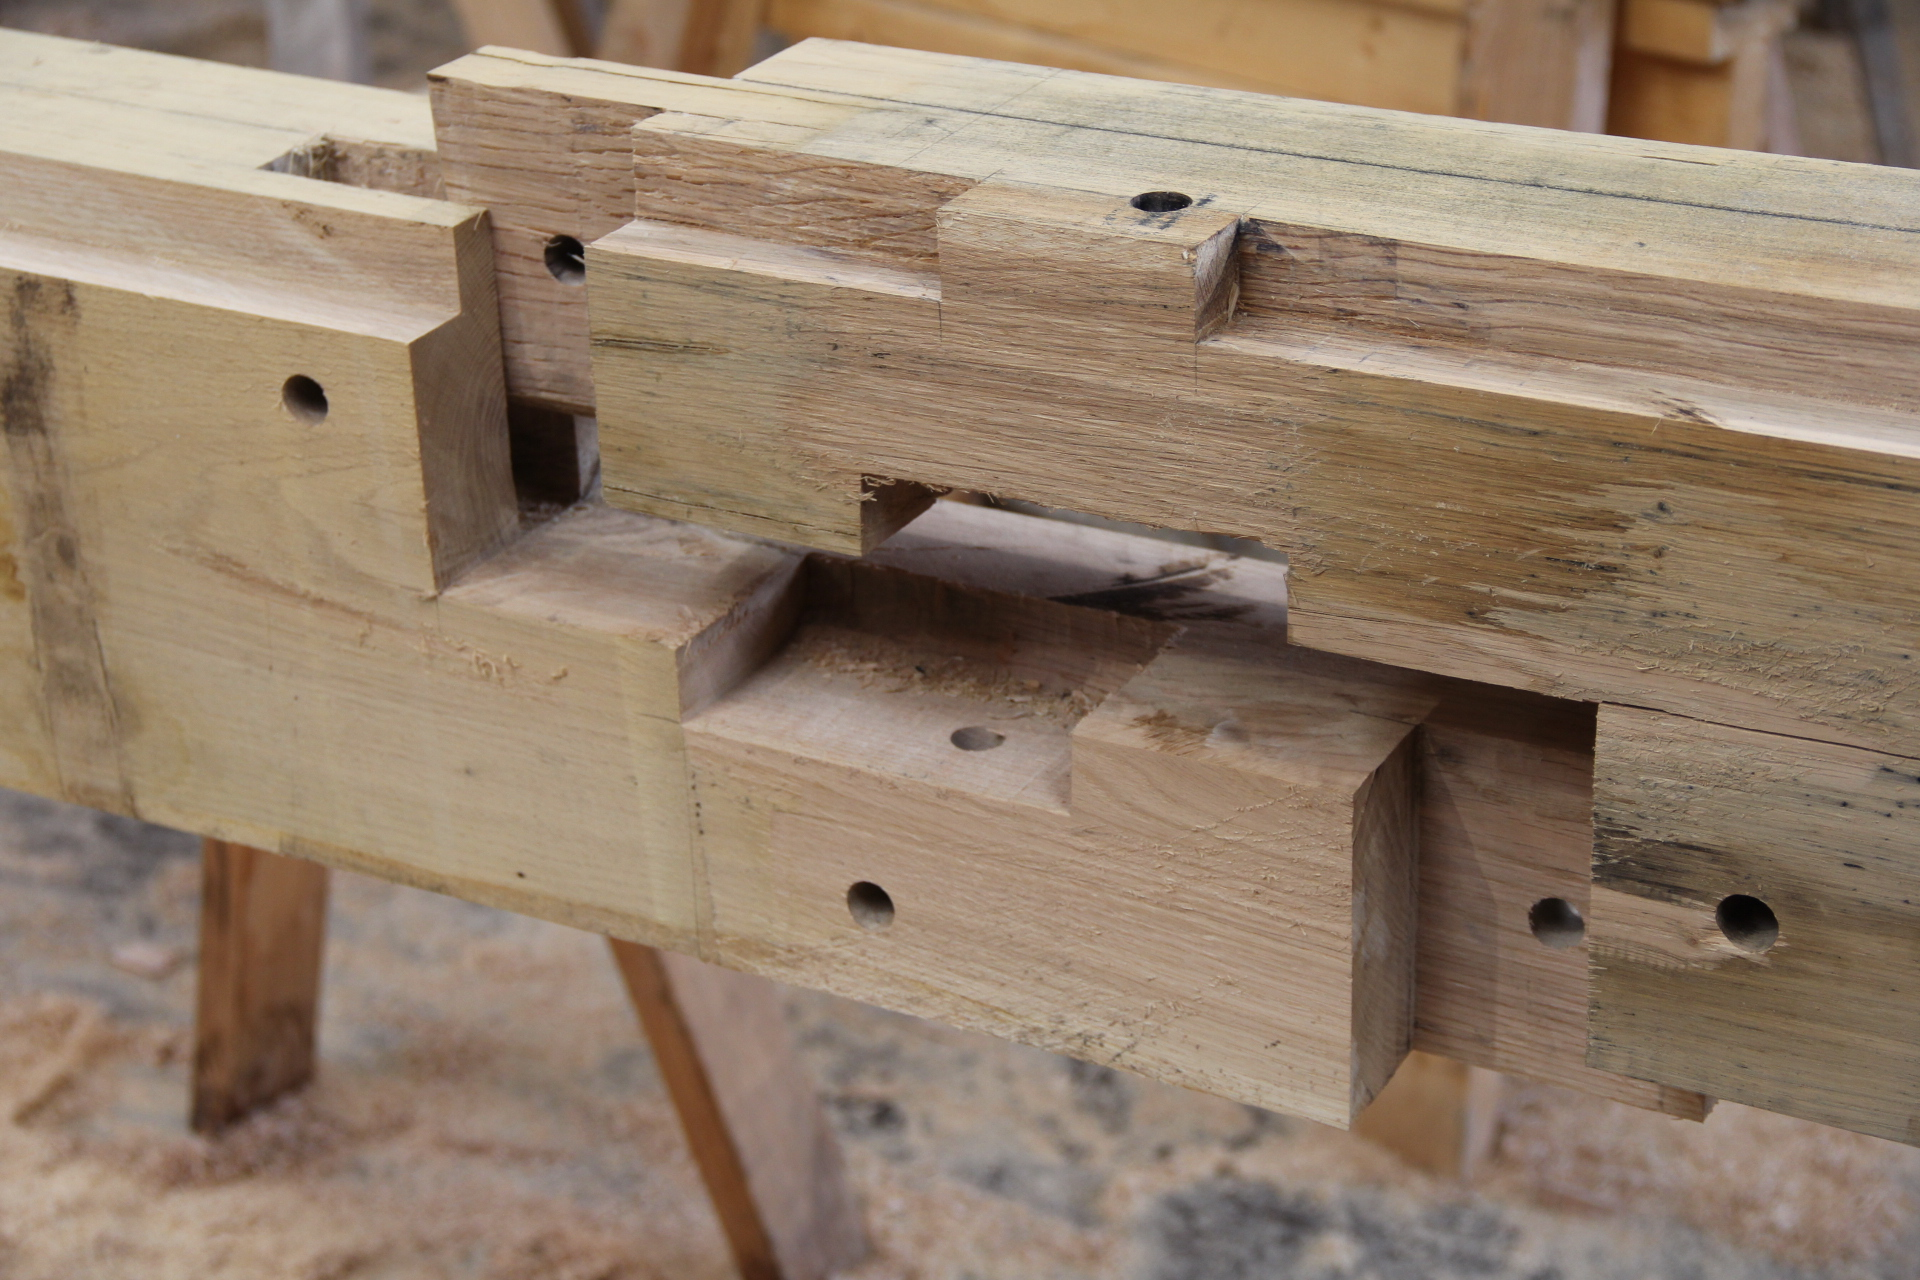 timber frame joint carpentry